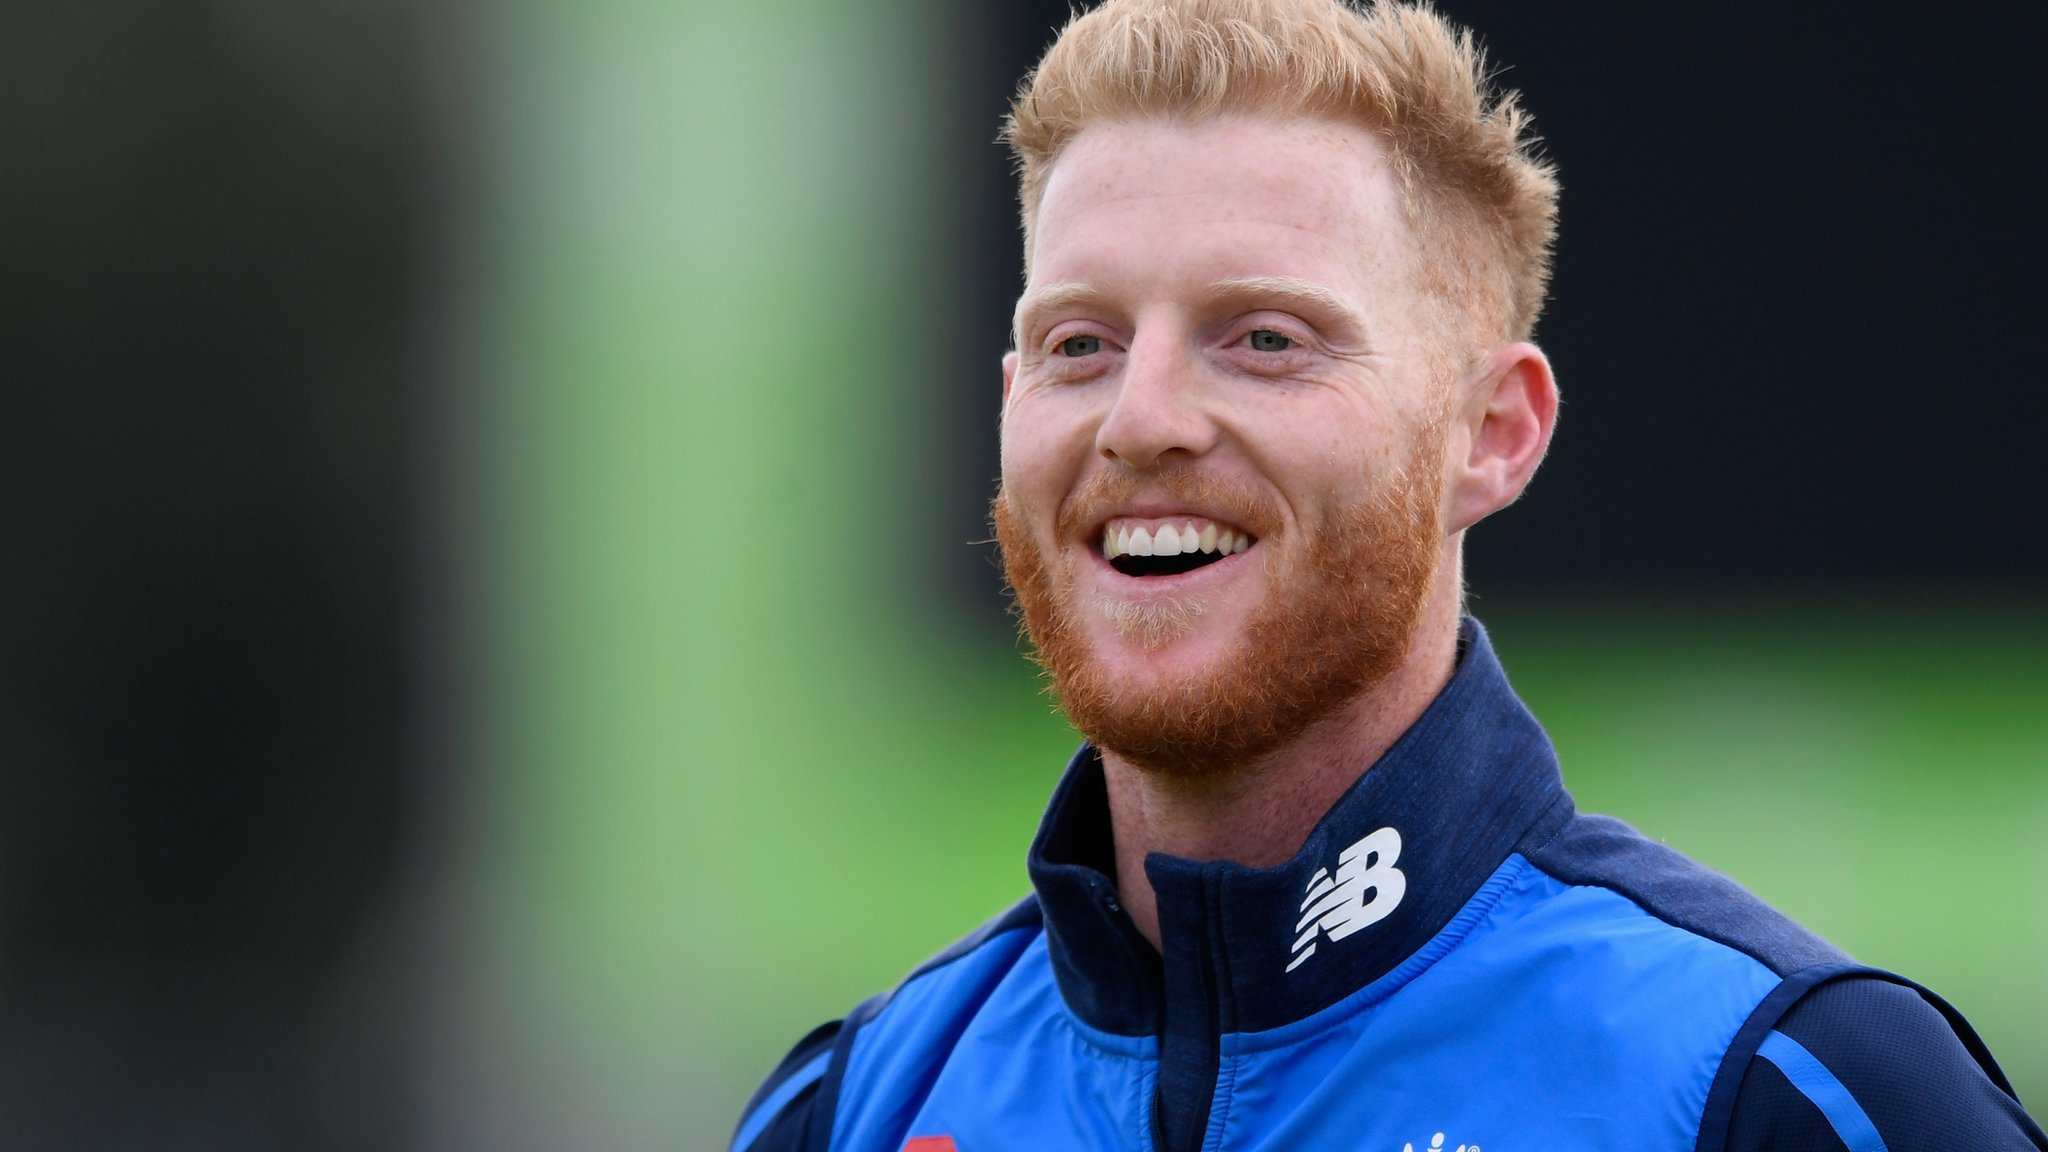 Ben Stokes 'extremely delighted' to rejoin England squad